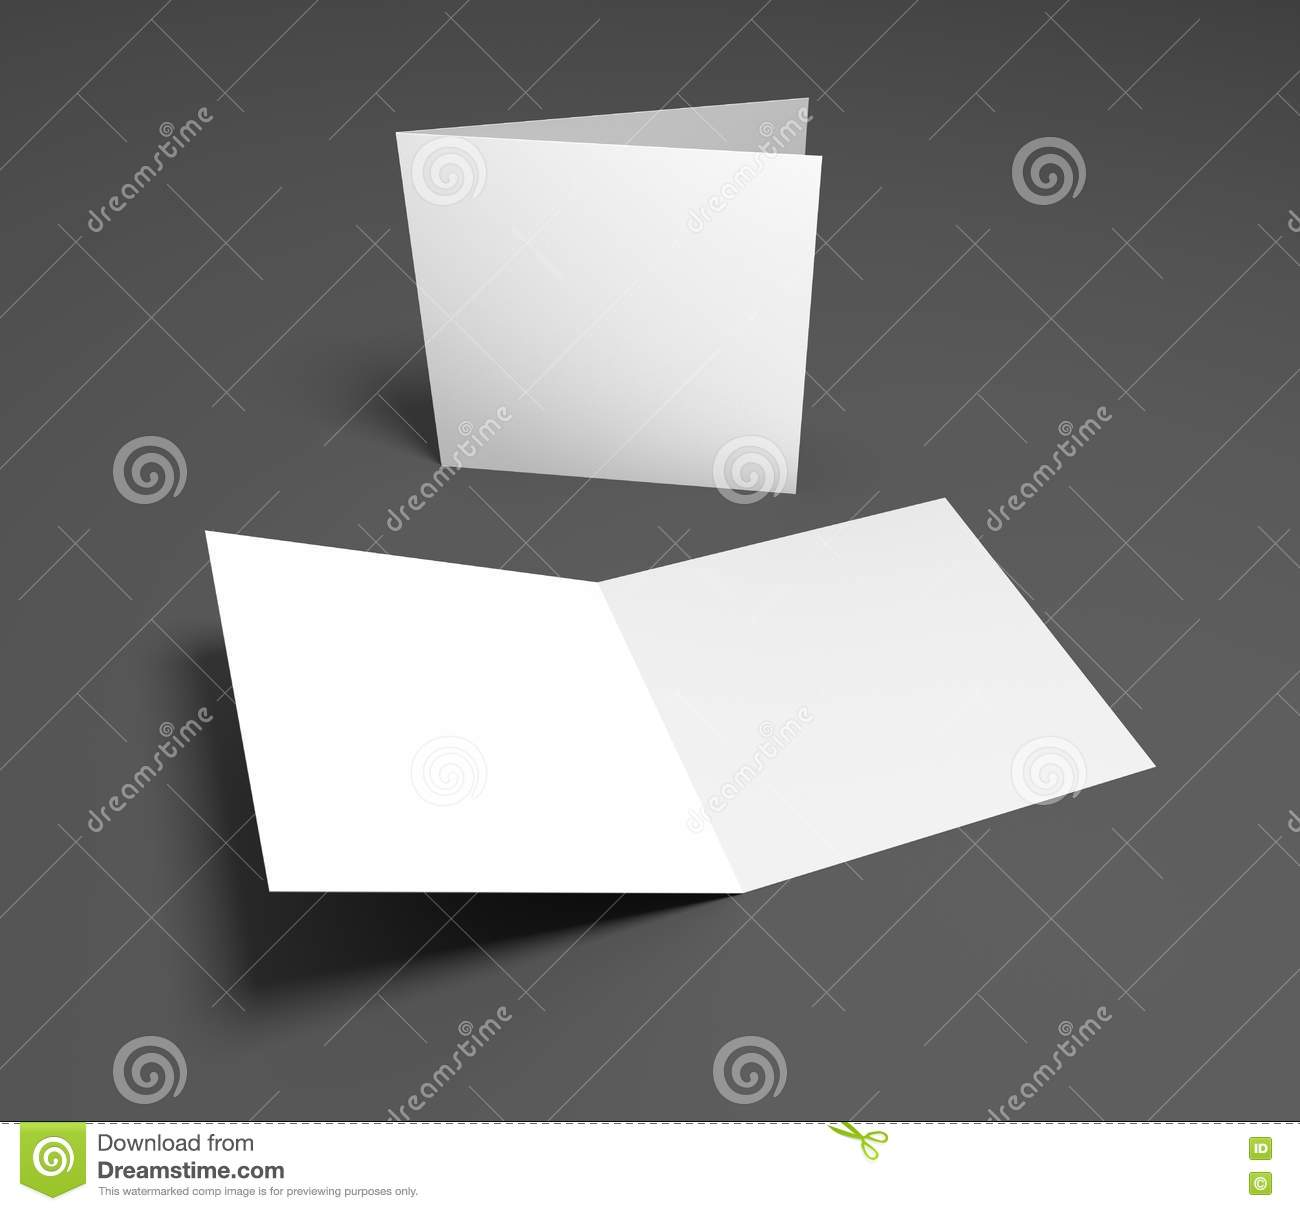 Blank 3d illustration open square greeting cards stock blank 3d illustration open square greeting cards kristyandbryce Gallery